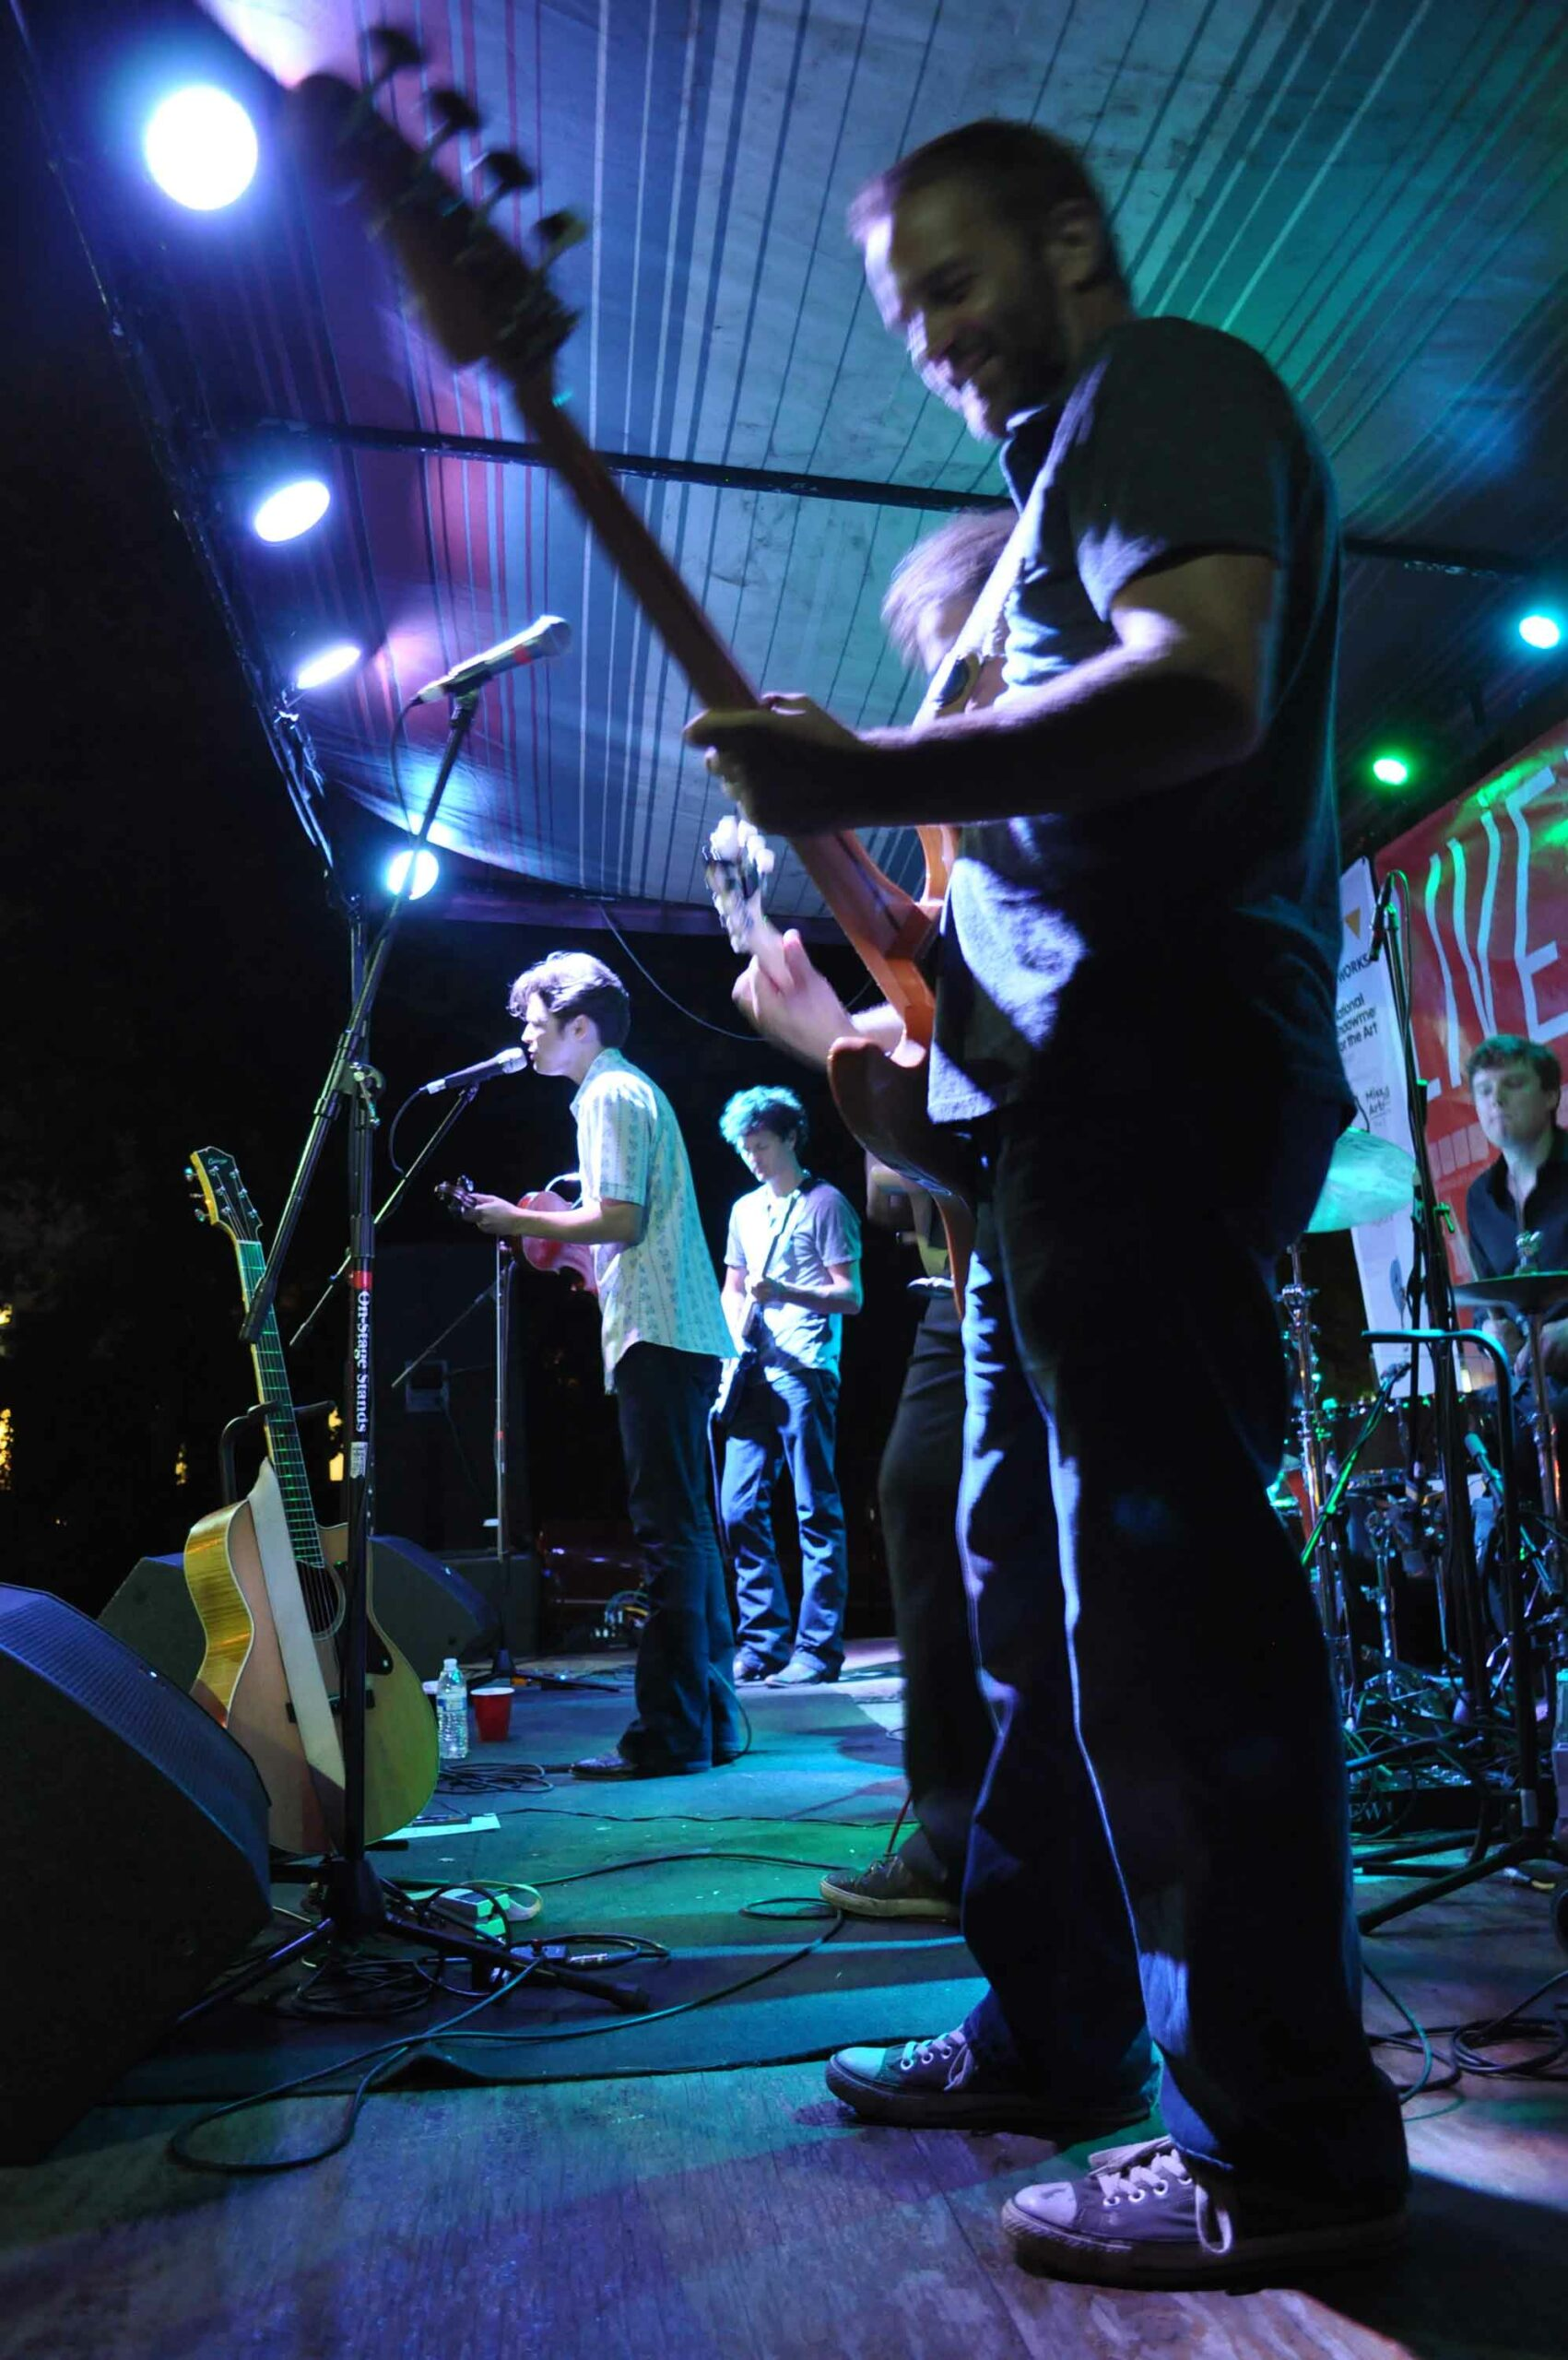 A band of musicians plays on a stage